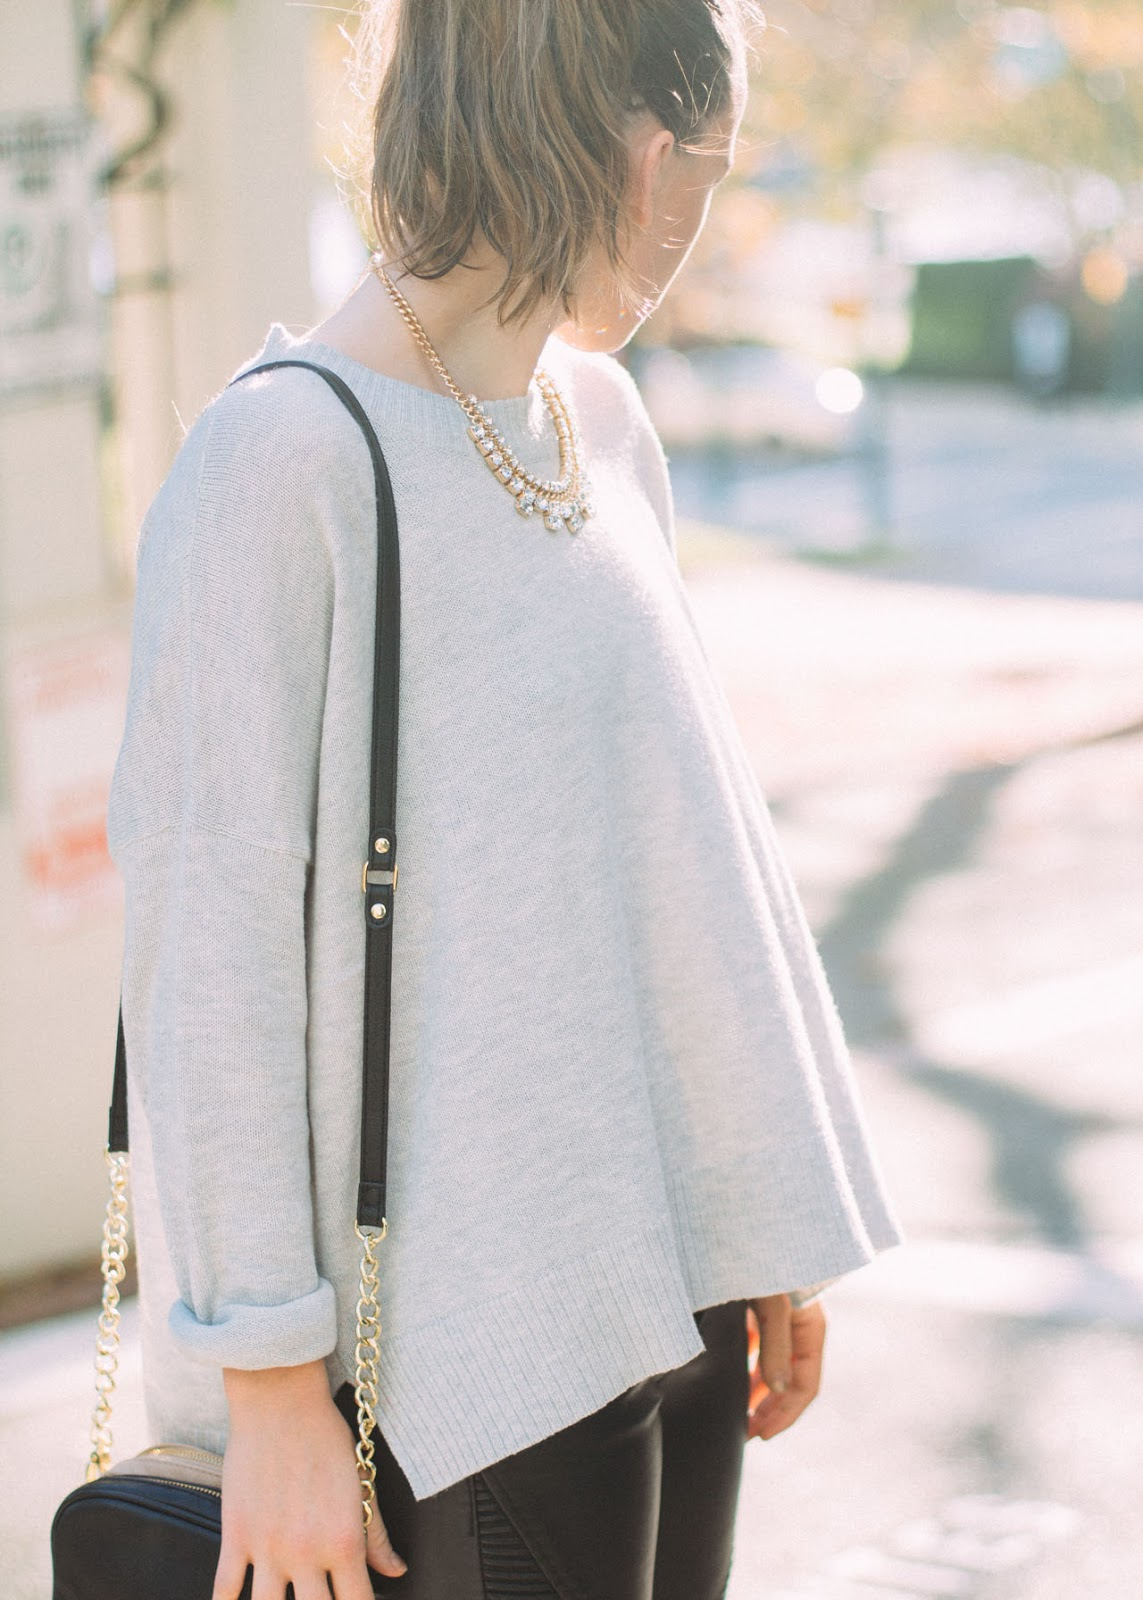 Fall Fashion event outfit - Vancouver Personal style blogs